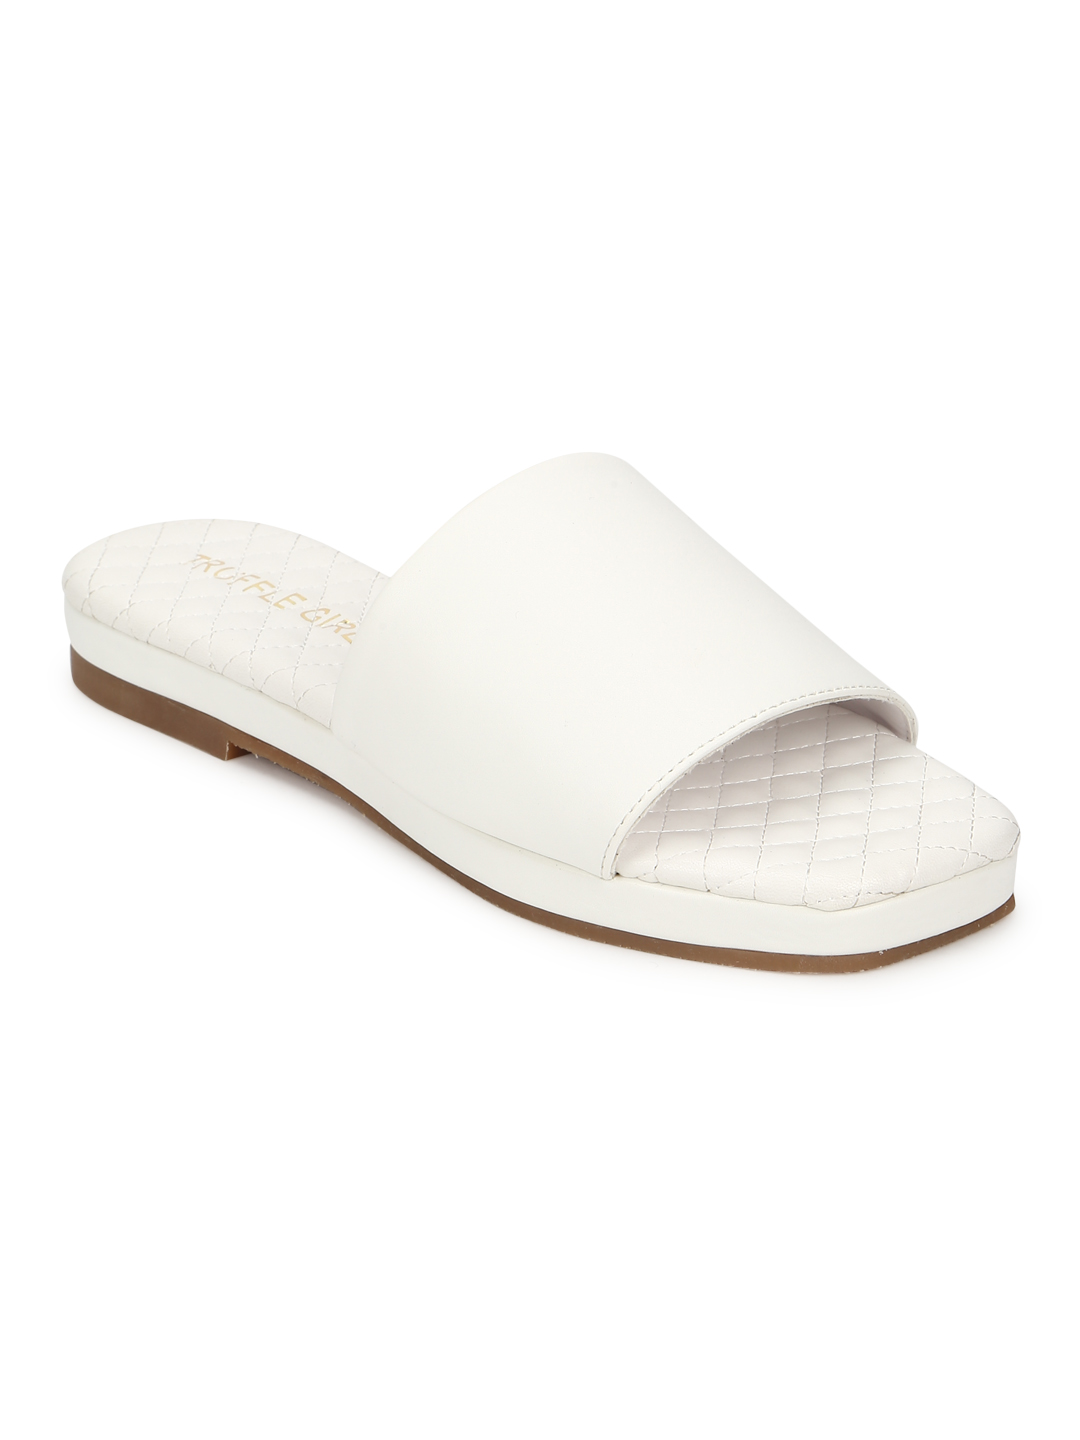 Truffle Collection | Truffle Collection White PU Quilted Sole Slides